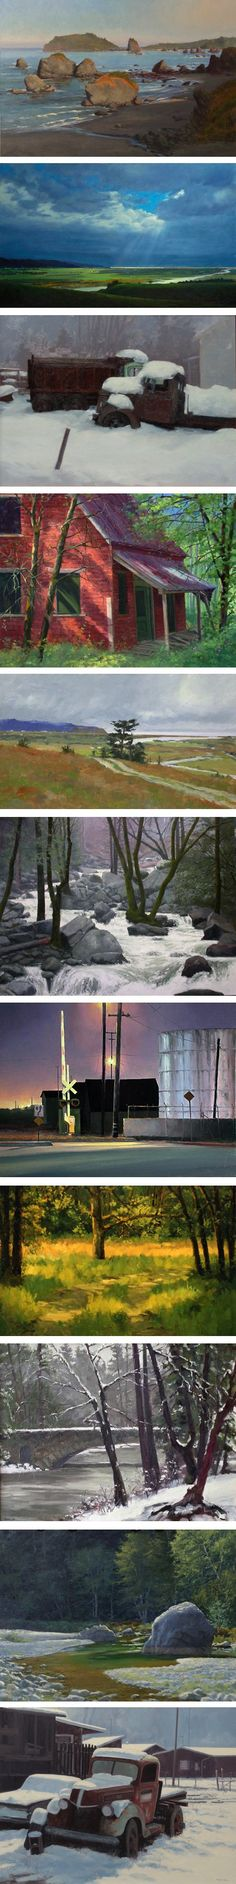 Stock Schlueter is a painter from northern California, who excels at capturing the light and atmosphere of that region, as well as more exotic locations from his travels.